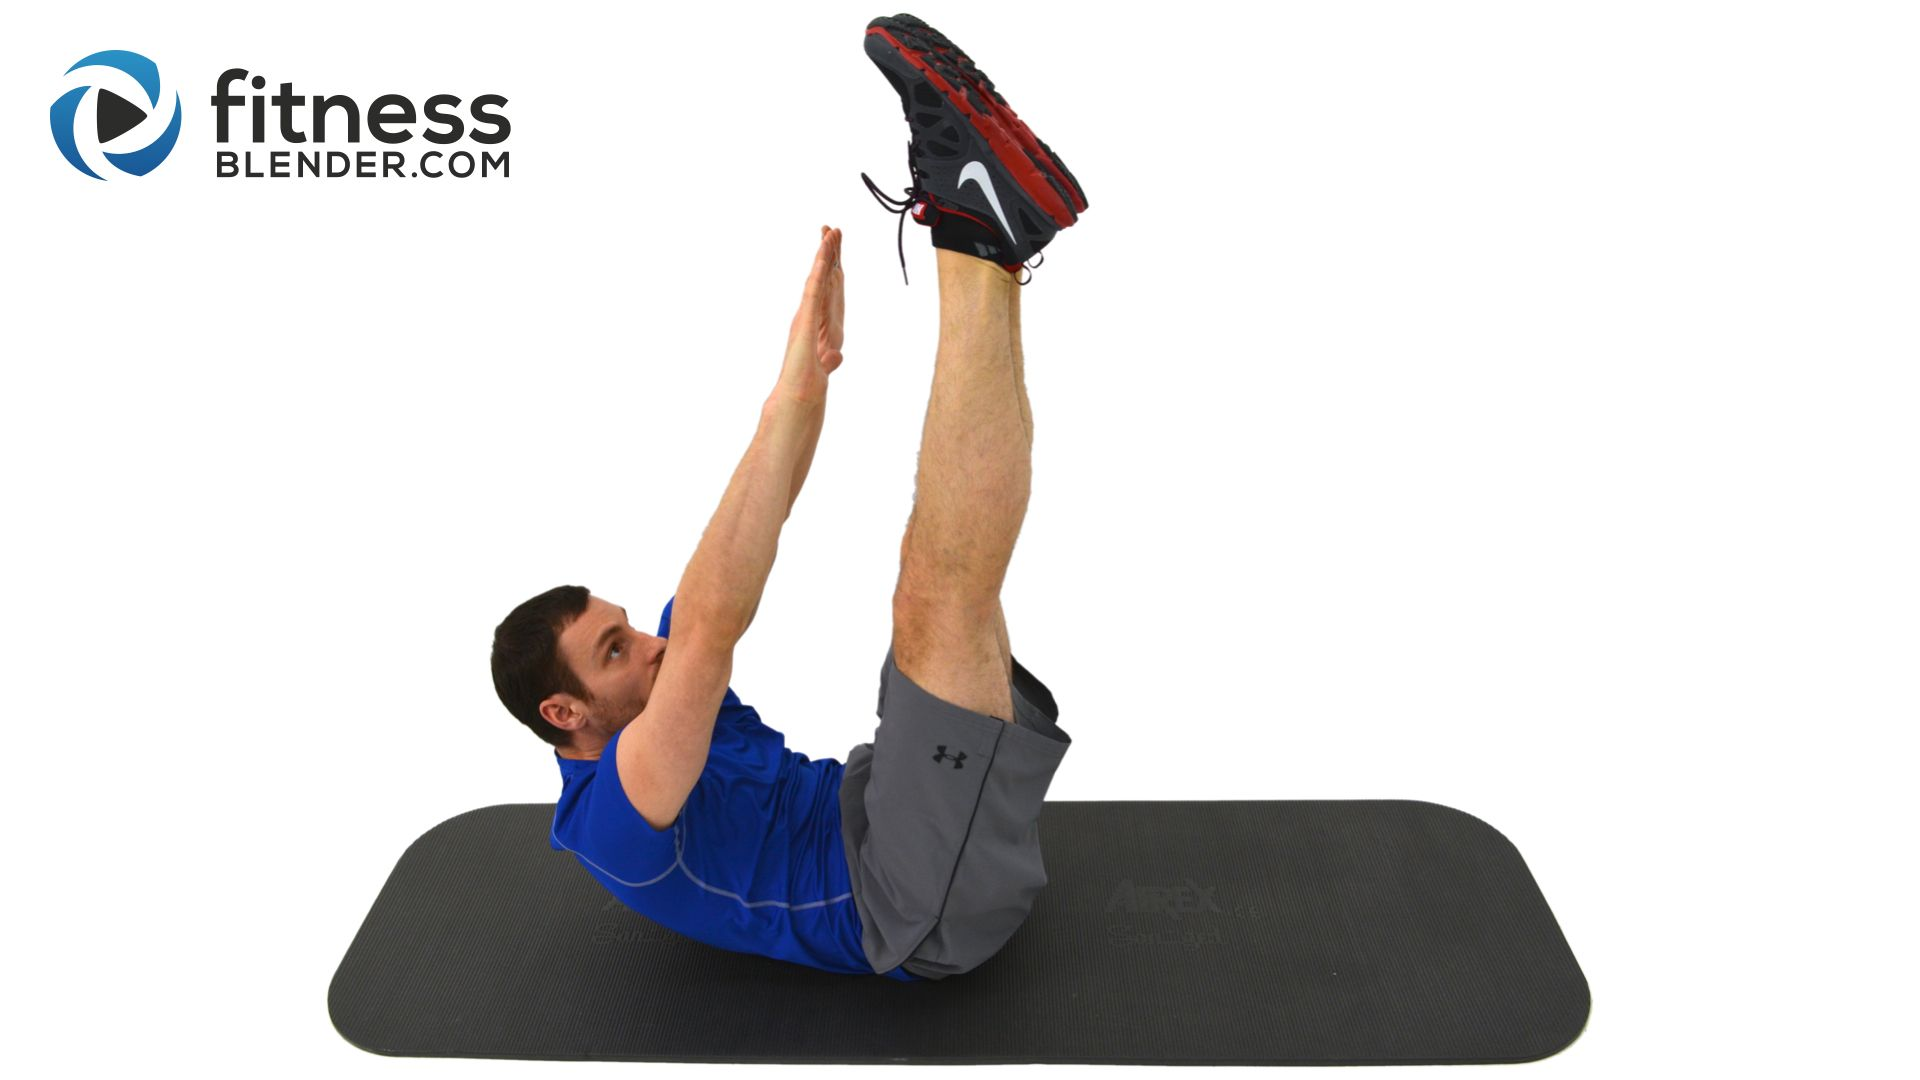 8 Minute Abs - Core Firming at Home Ab Workout - Fitness Blender